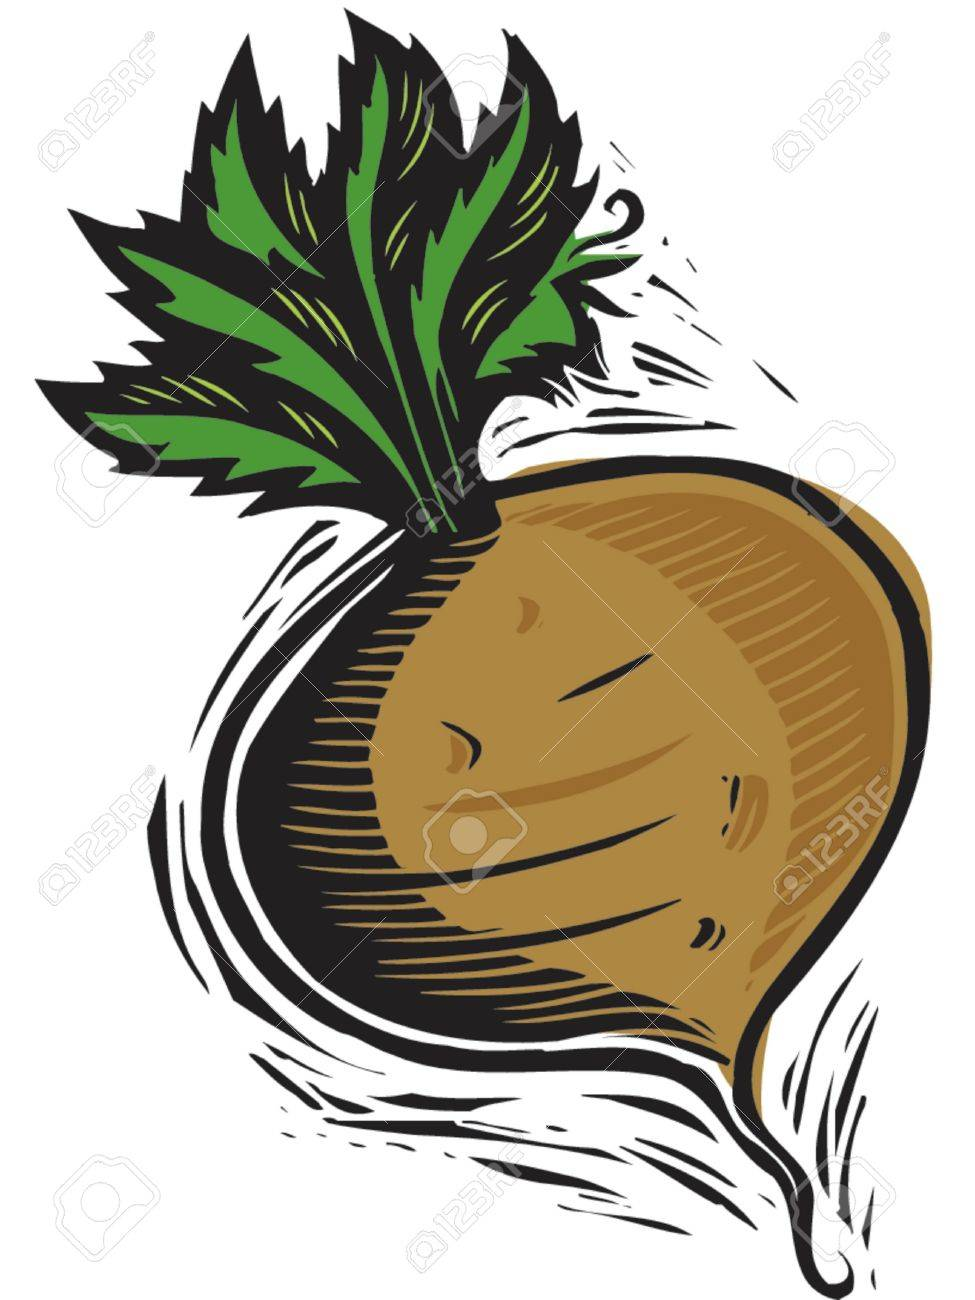 turnip Stock Photo - 15208404